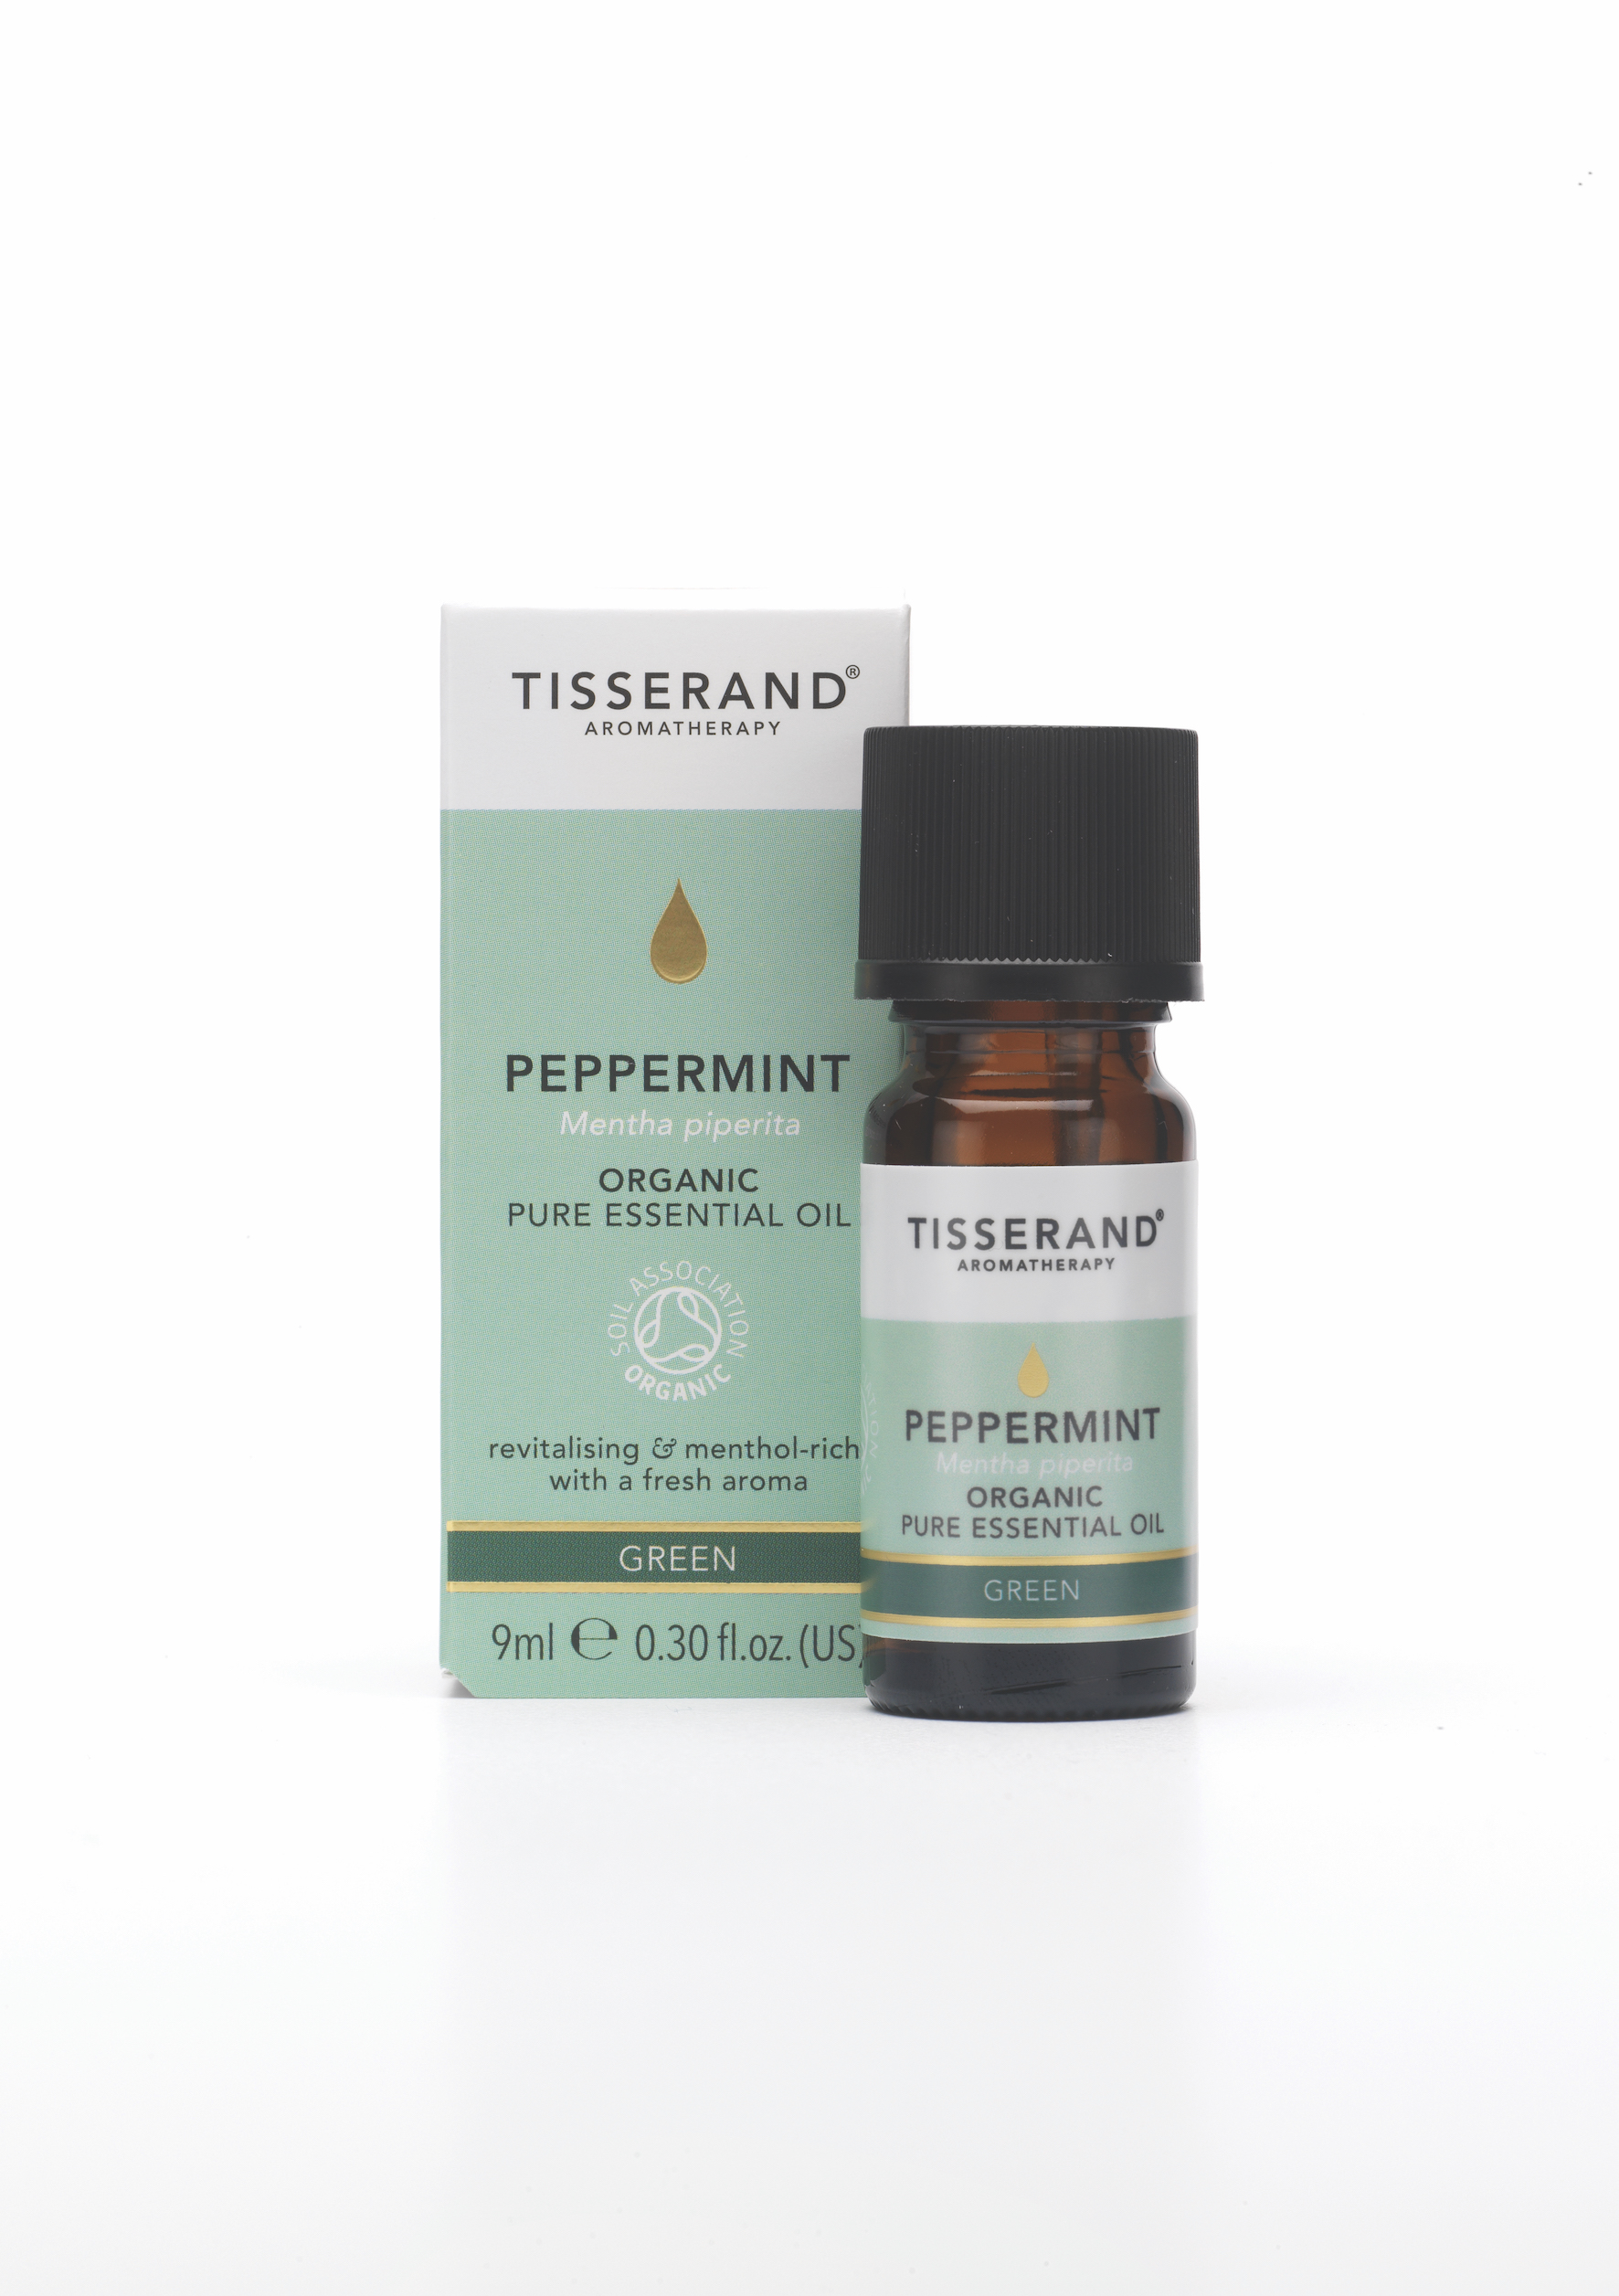 Peppermint 9ml_Bottle & Carton-1.jpg